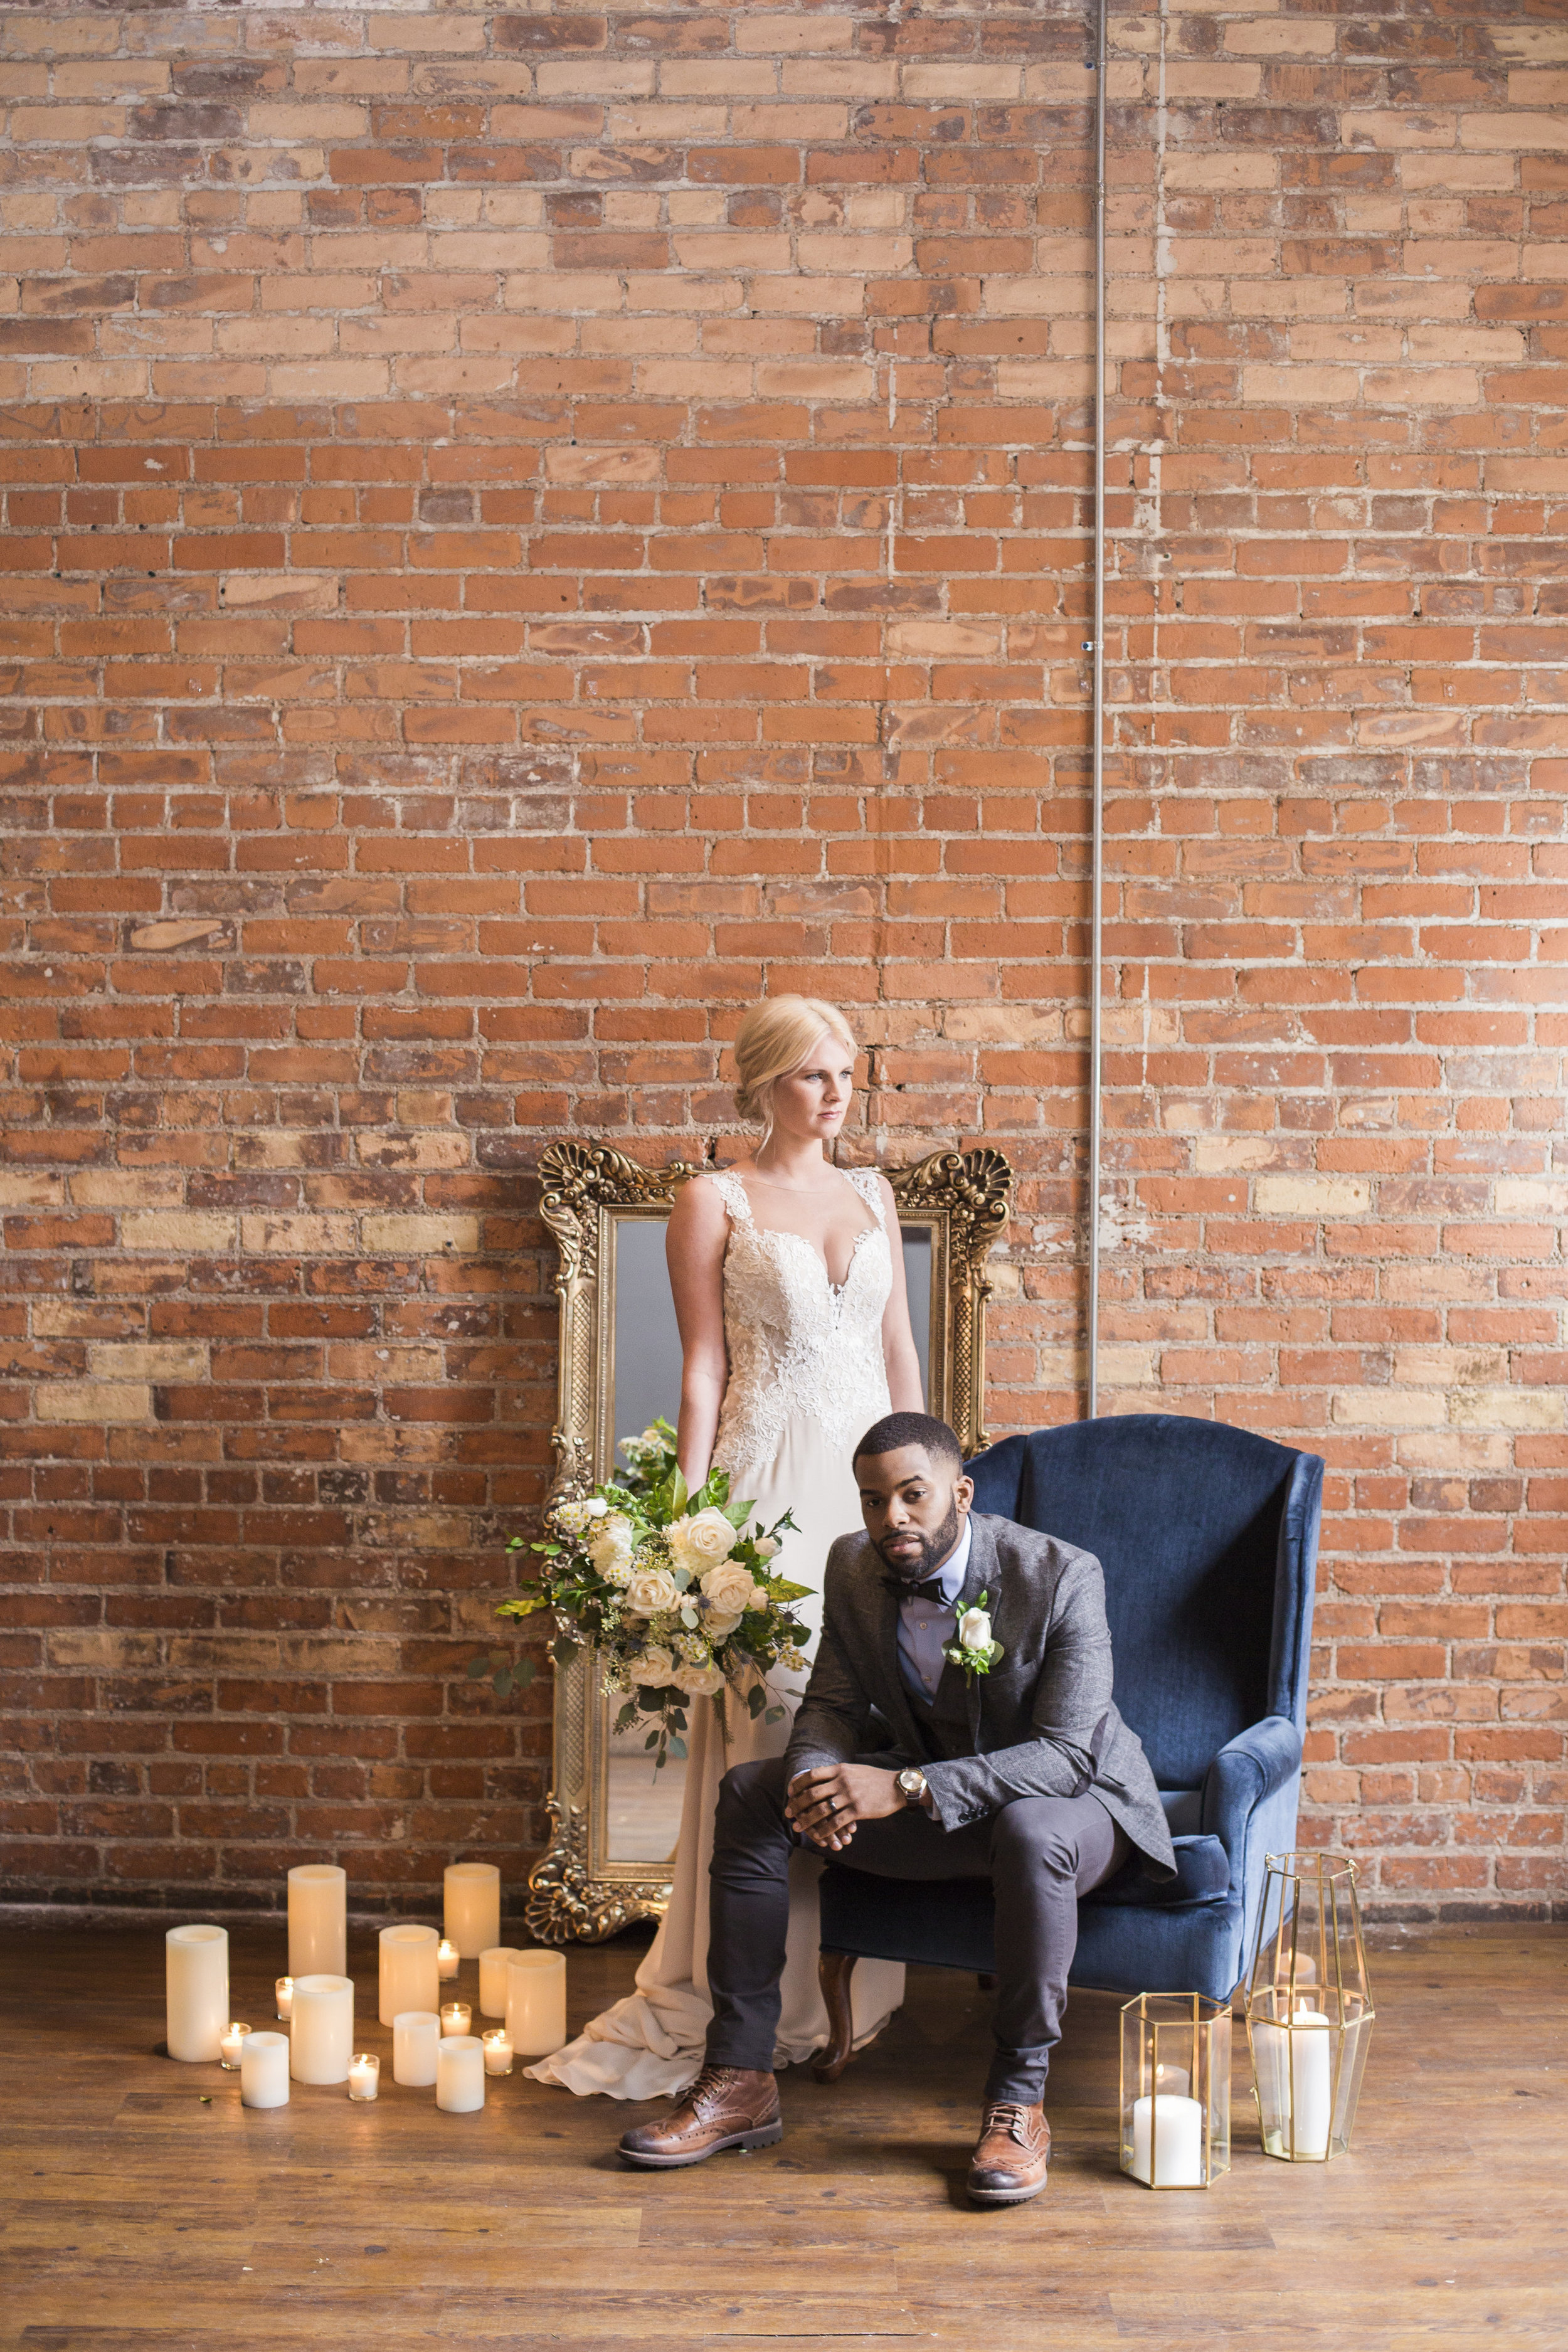 Modern-and-Ethereal-Downtown-Wedding-Inspiration